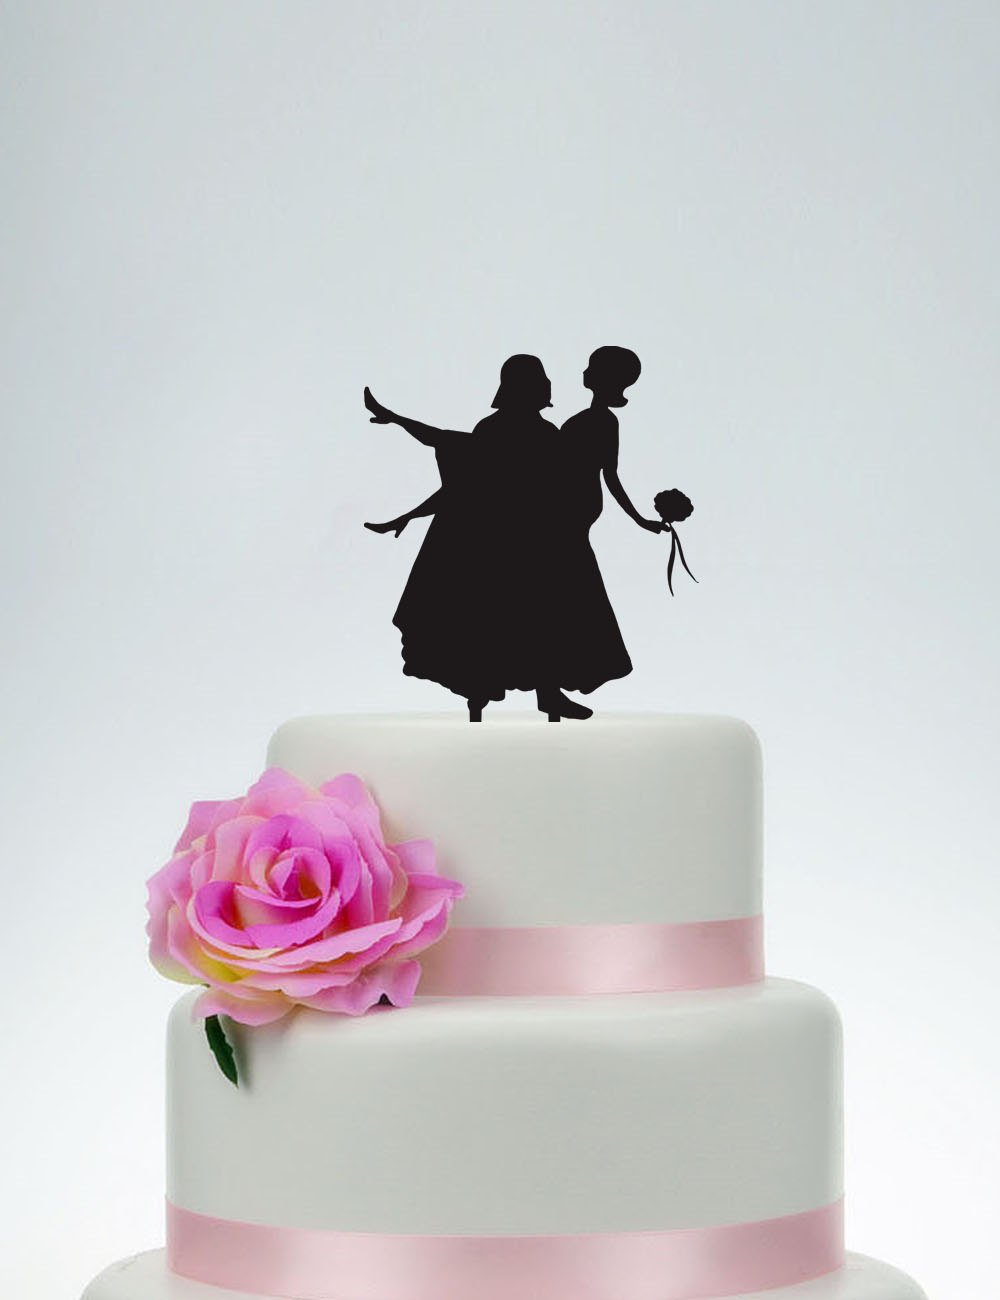 r2d2 wedding cake topper 7 wars wedding cake toppers 18951